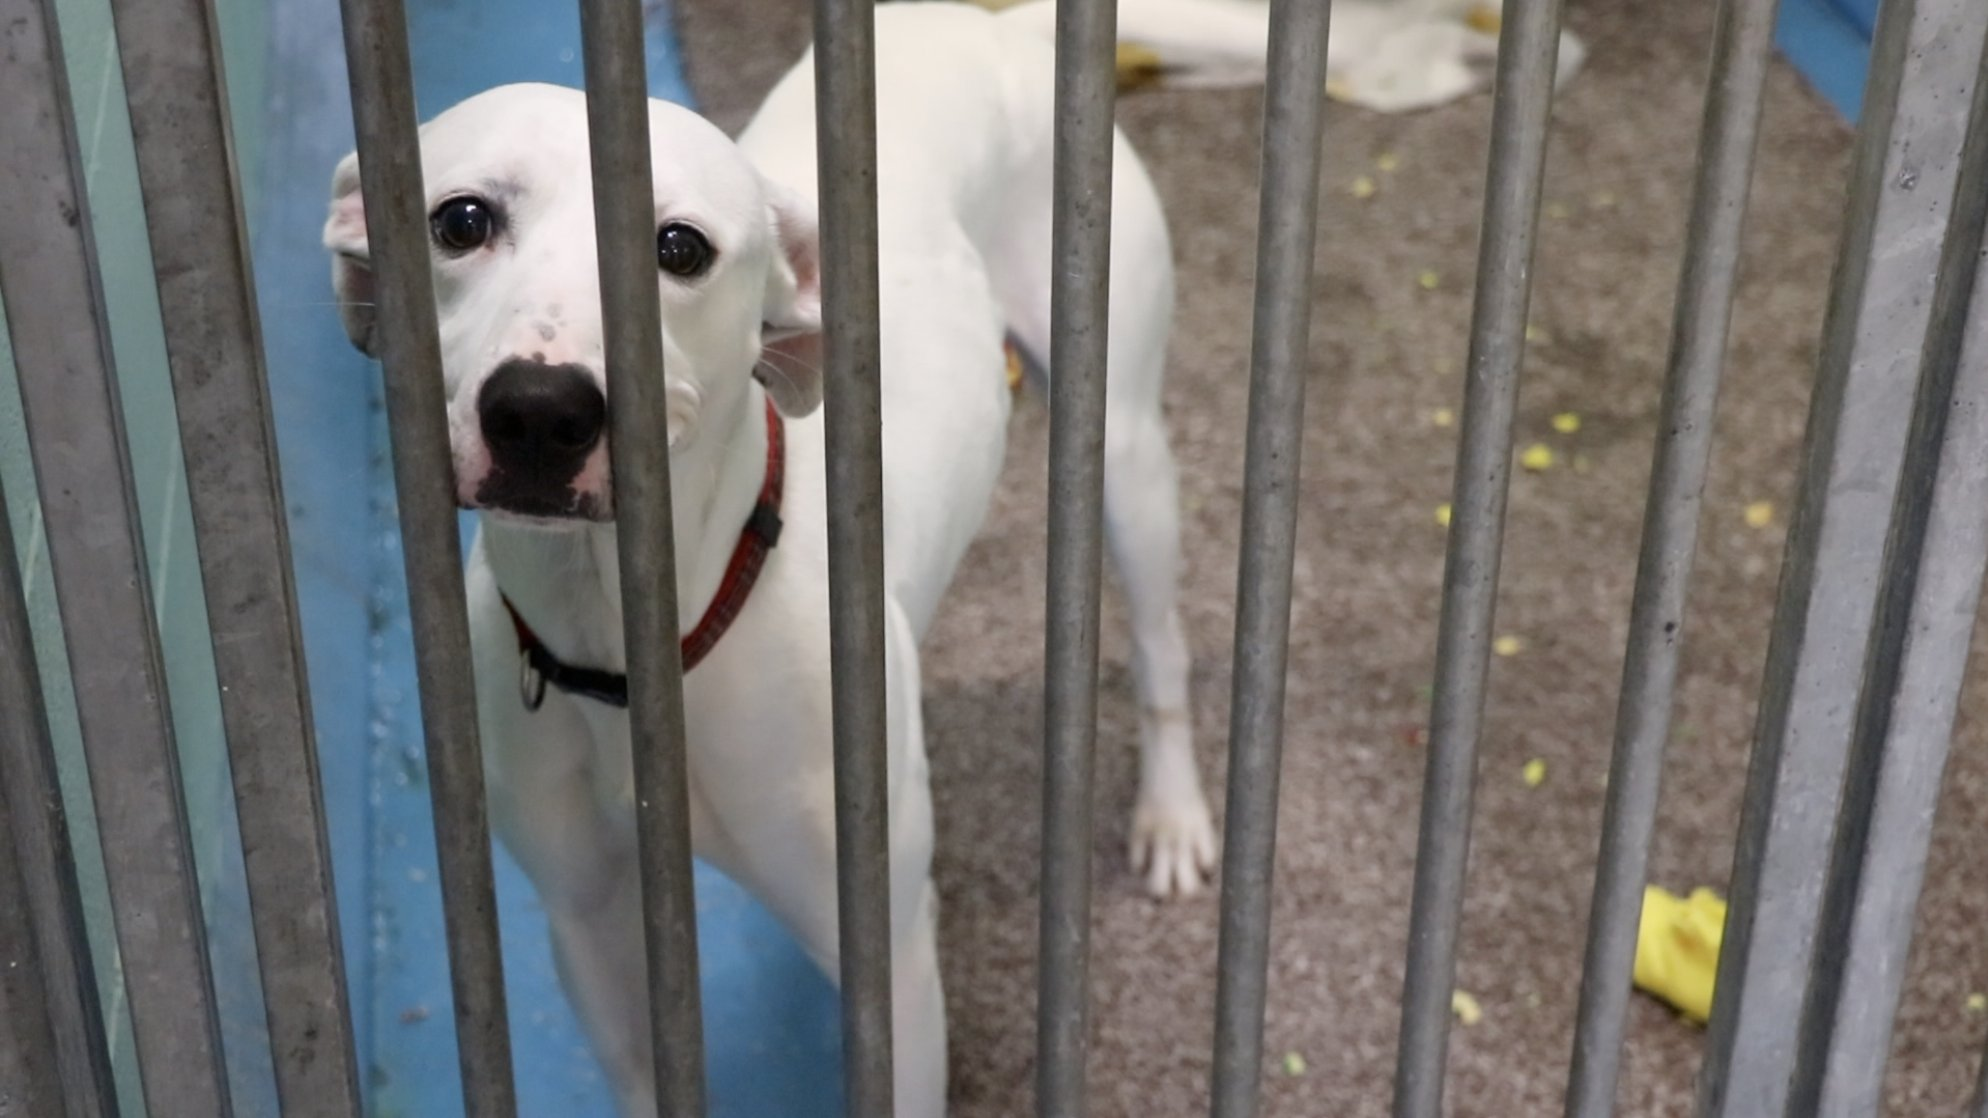 Newcastle Cat & Dog Shelter appeal aims to keep animals warm